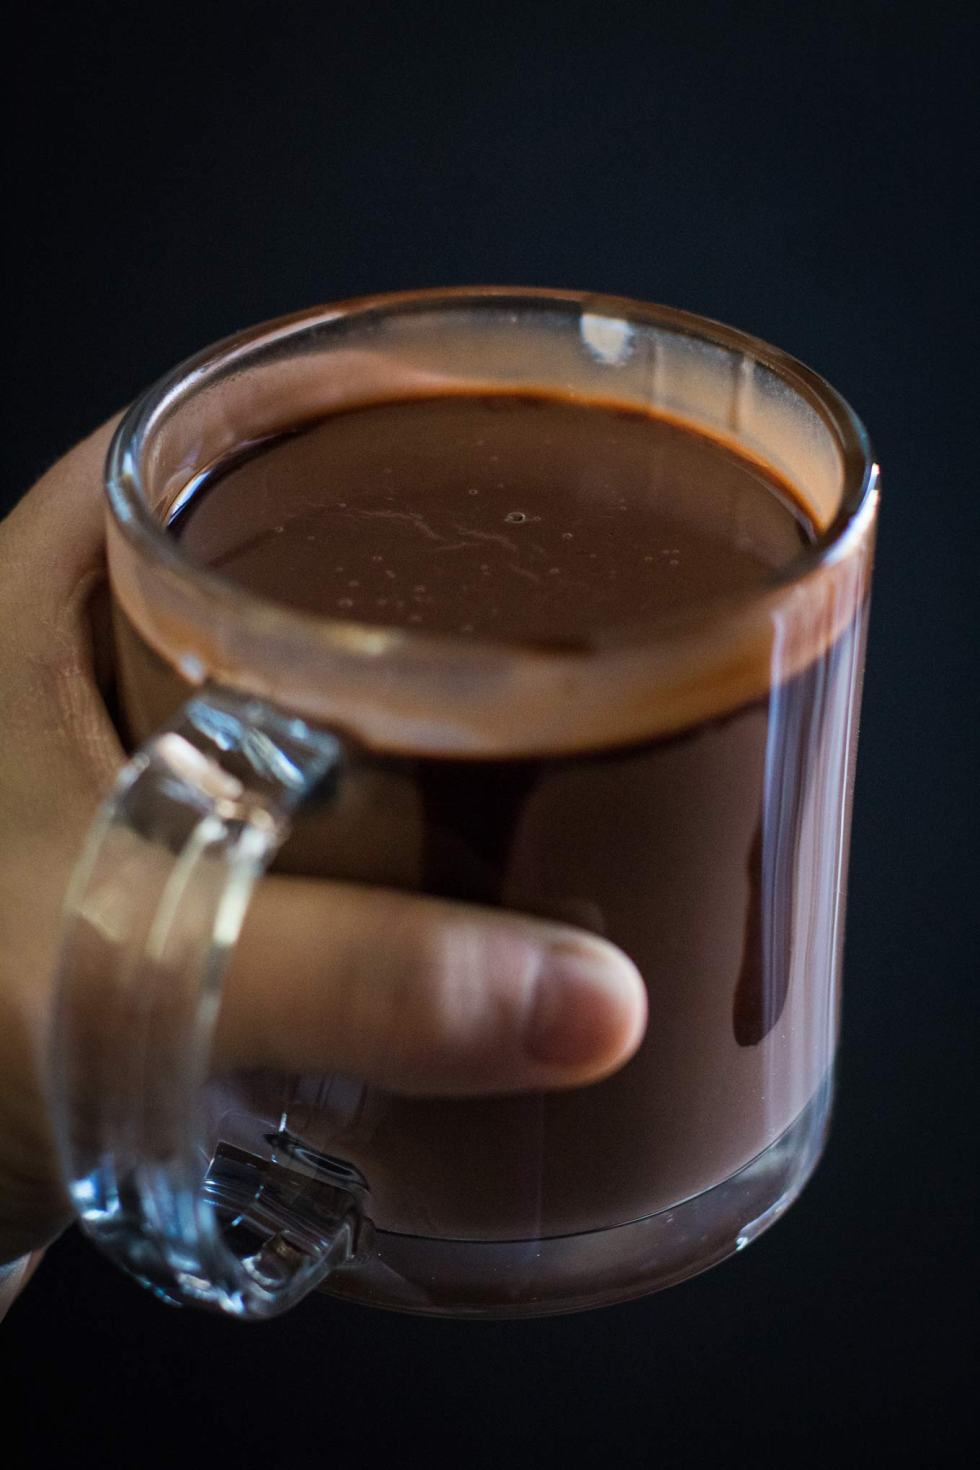 Close-up of person holding thick hot chocolate in a glass mug.